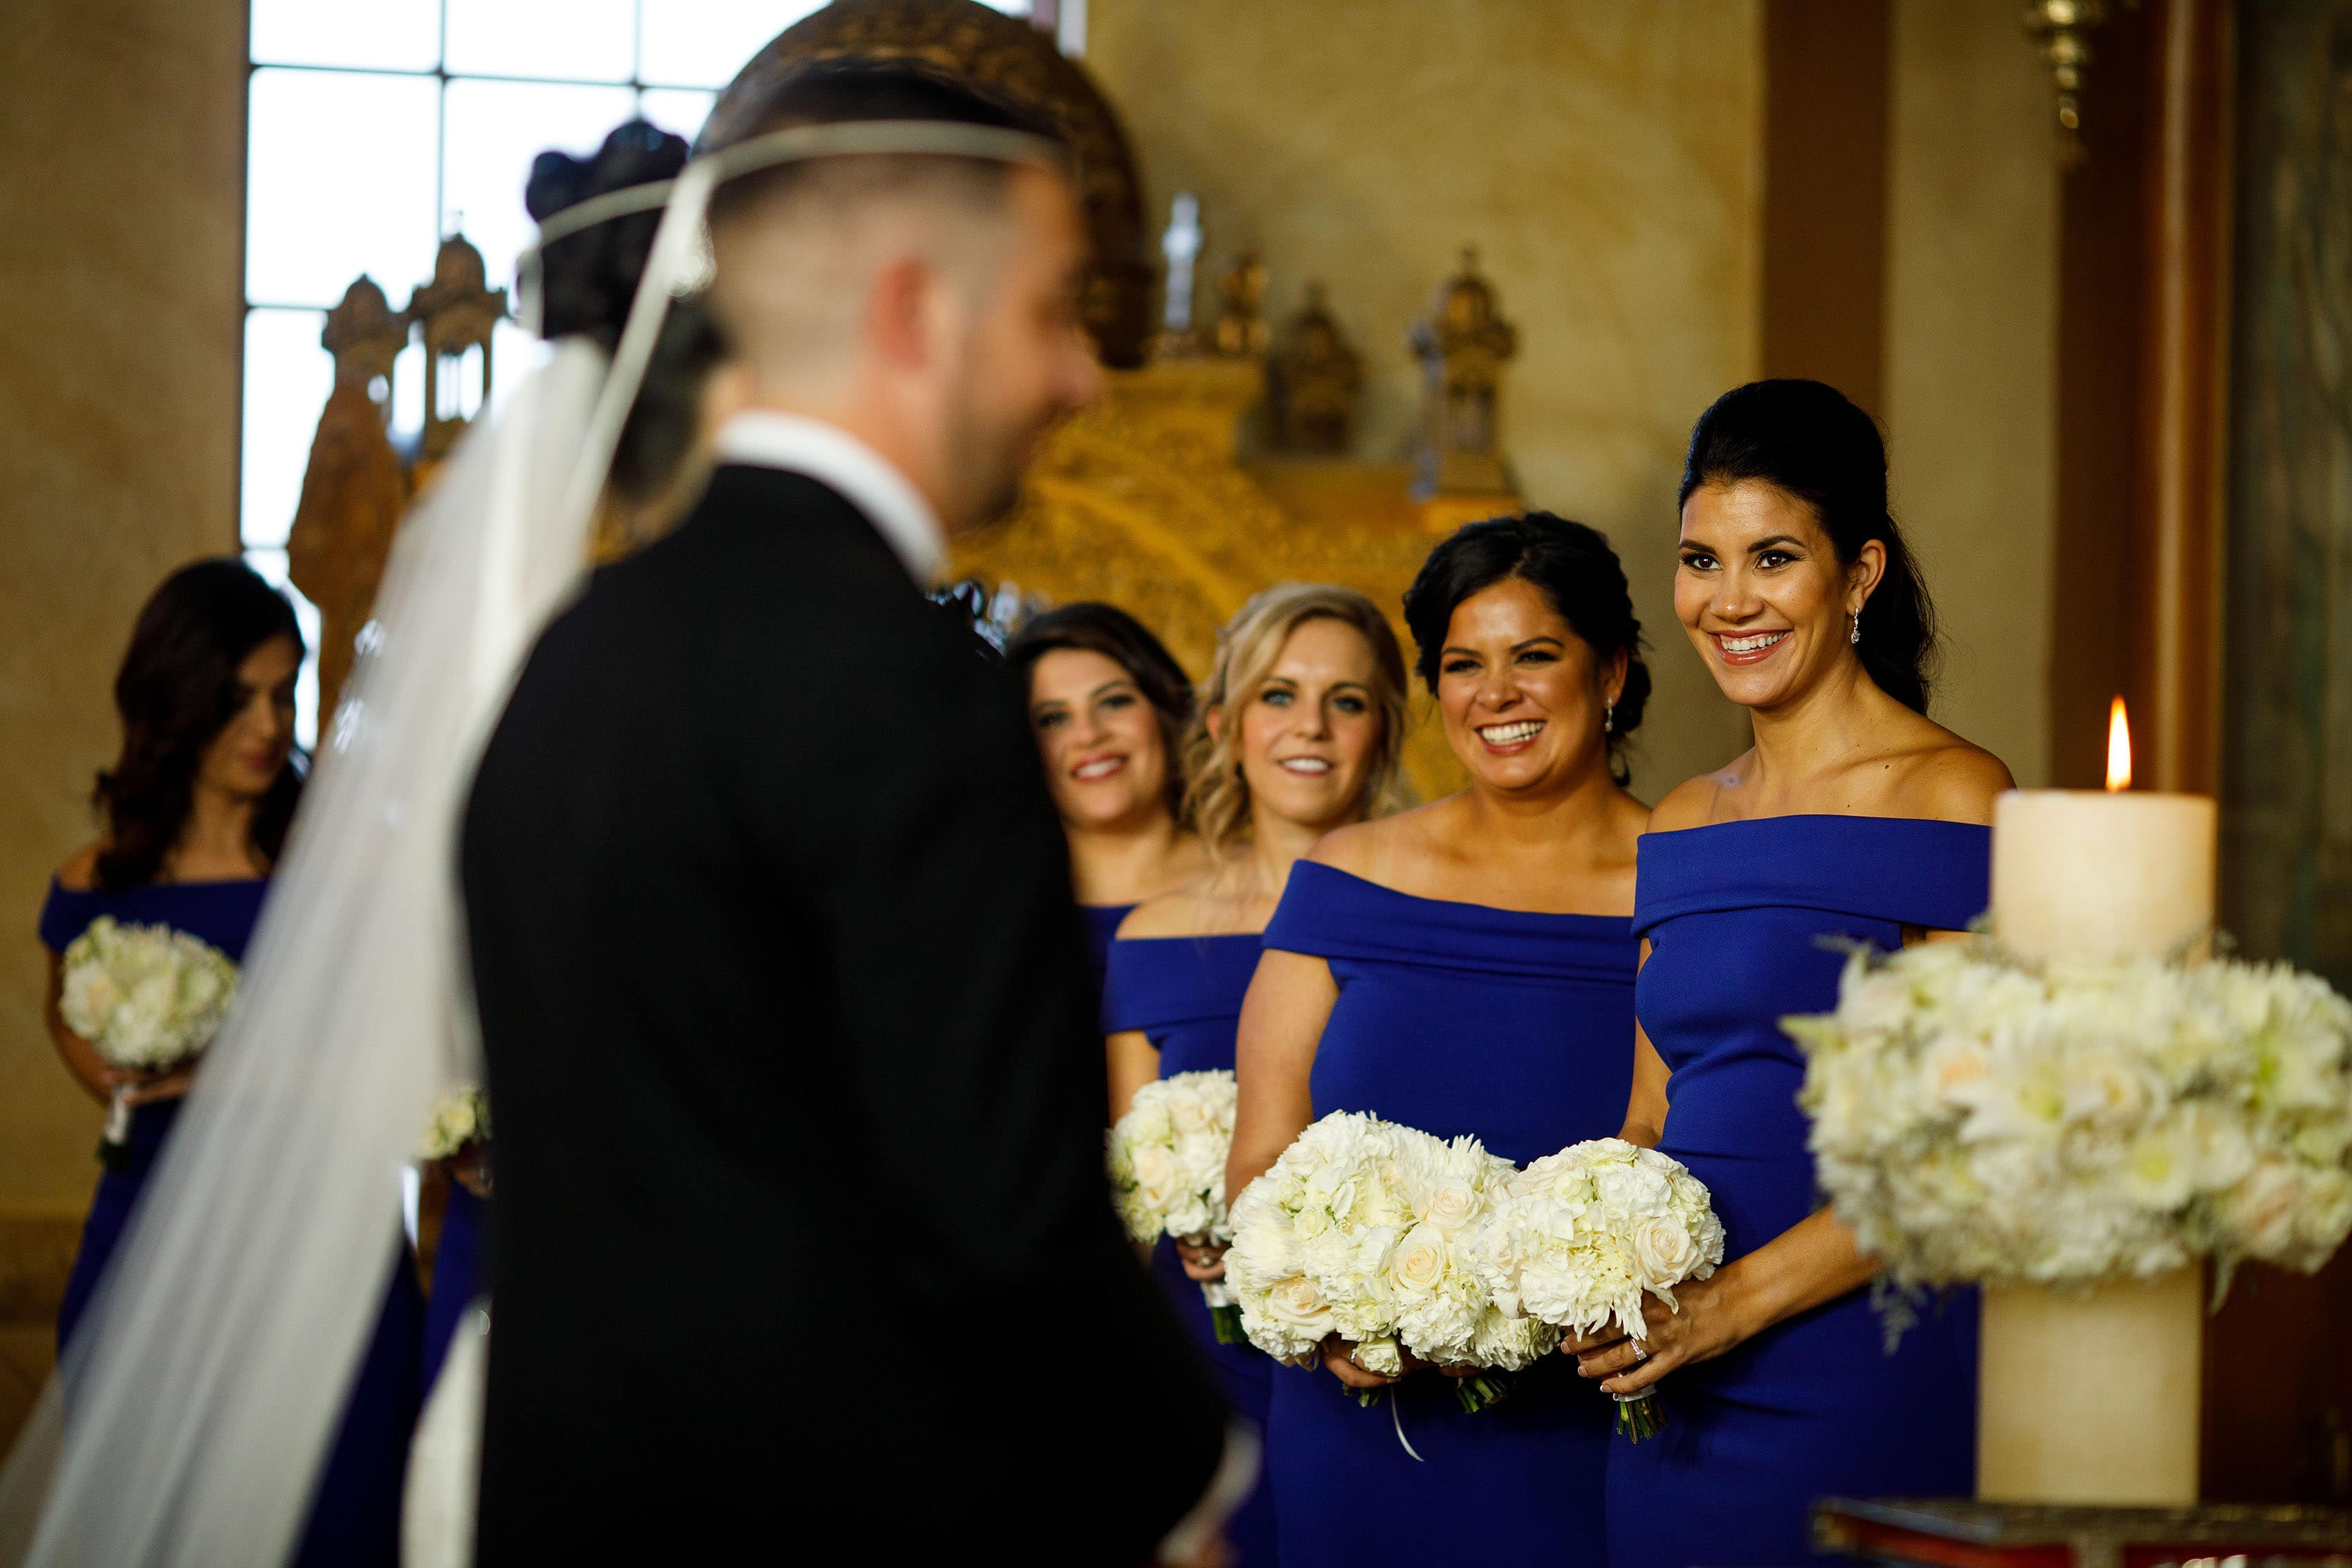 The Koumbara and bridesmaids smile during the greek wedding in Albuquerque